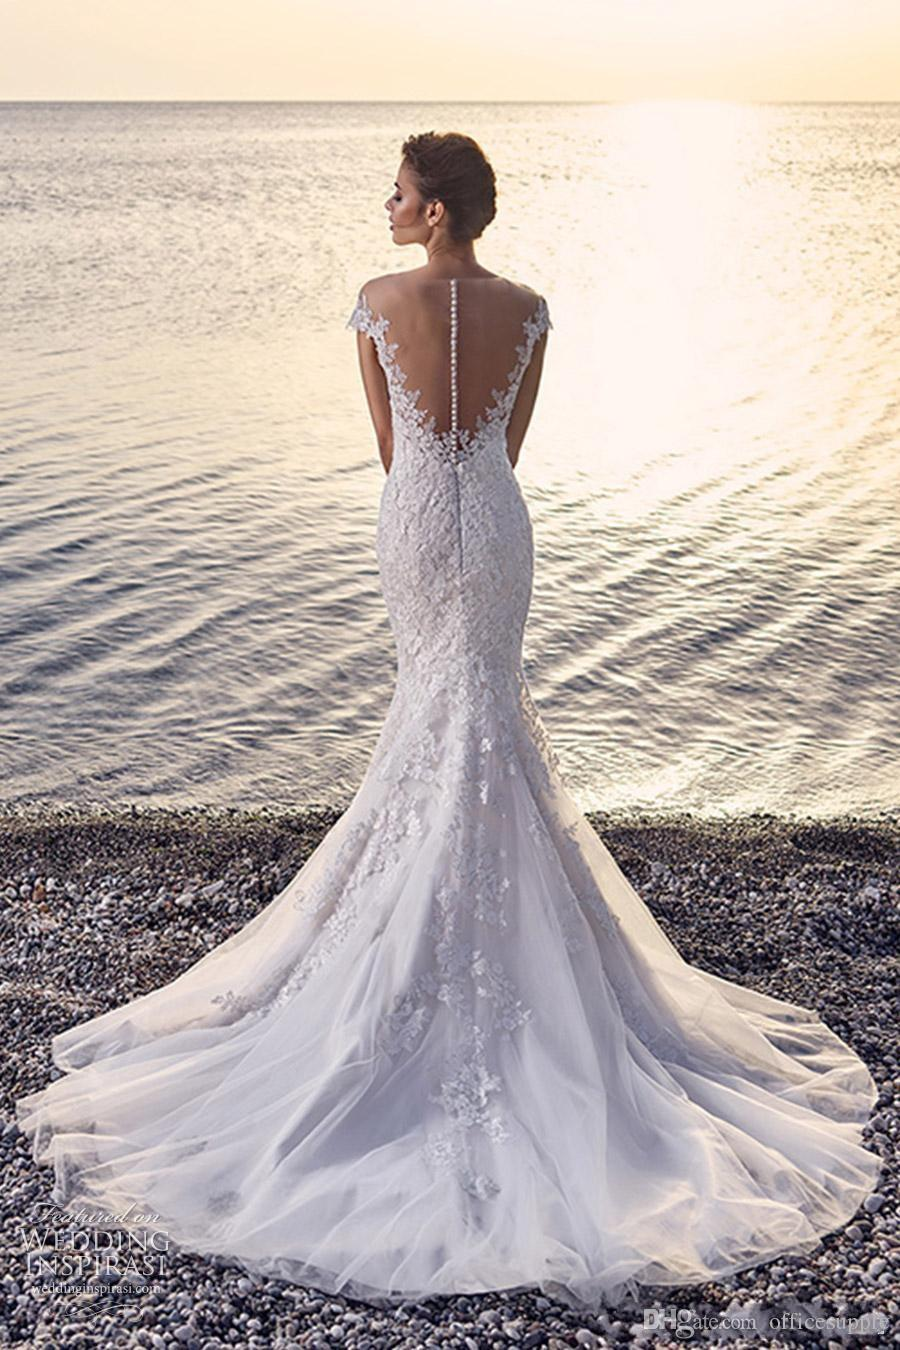 Berta Sexy Luxury Illusion Lace Applique Mermaid Wedding Dresses 2017 Vintage Sheer Cap Sleeves Covered Button Floor Length Bridal Gowns